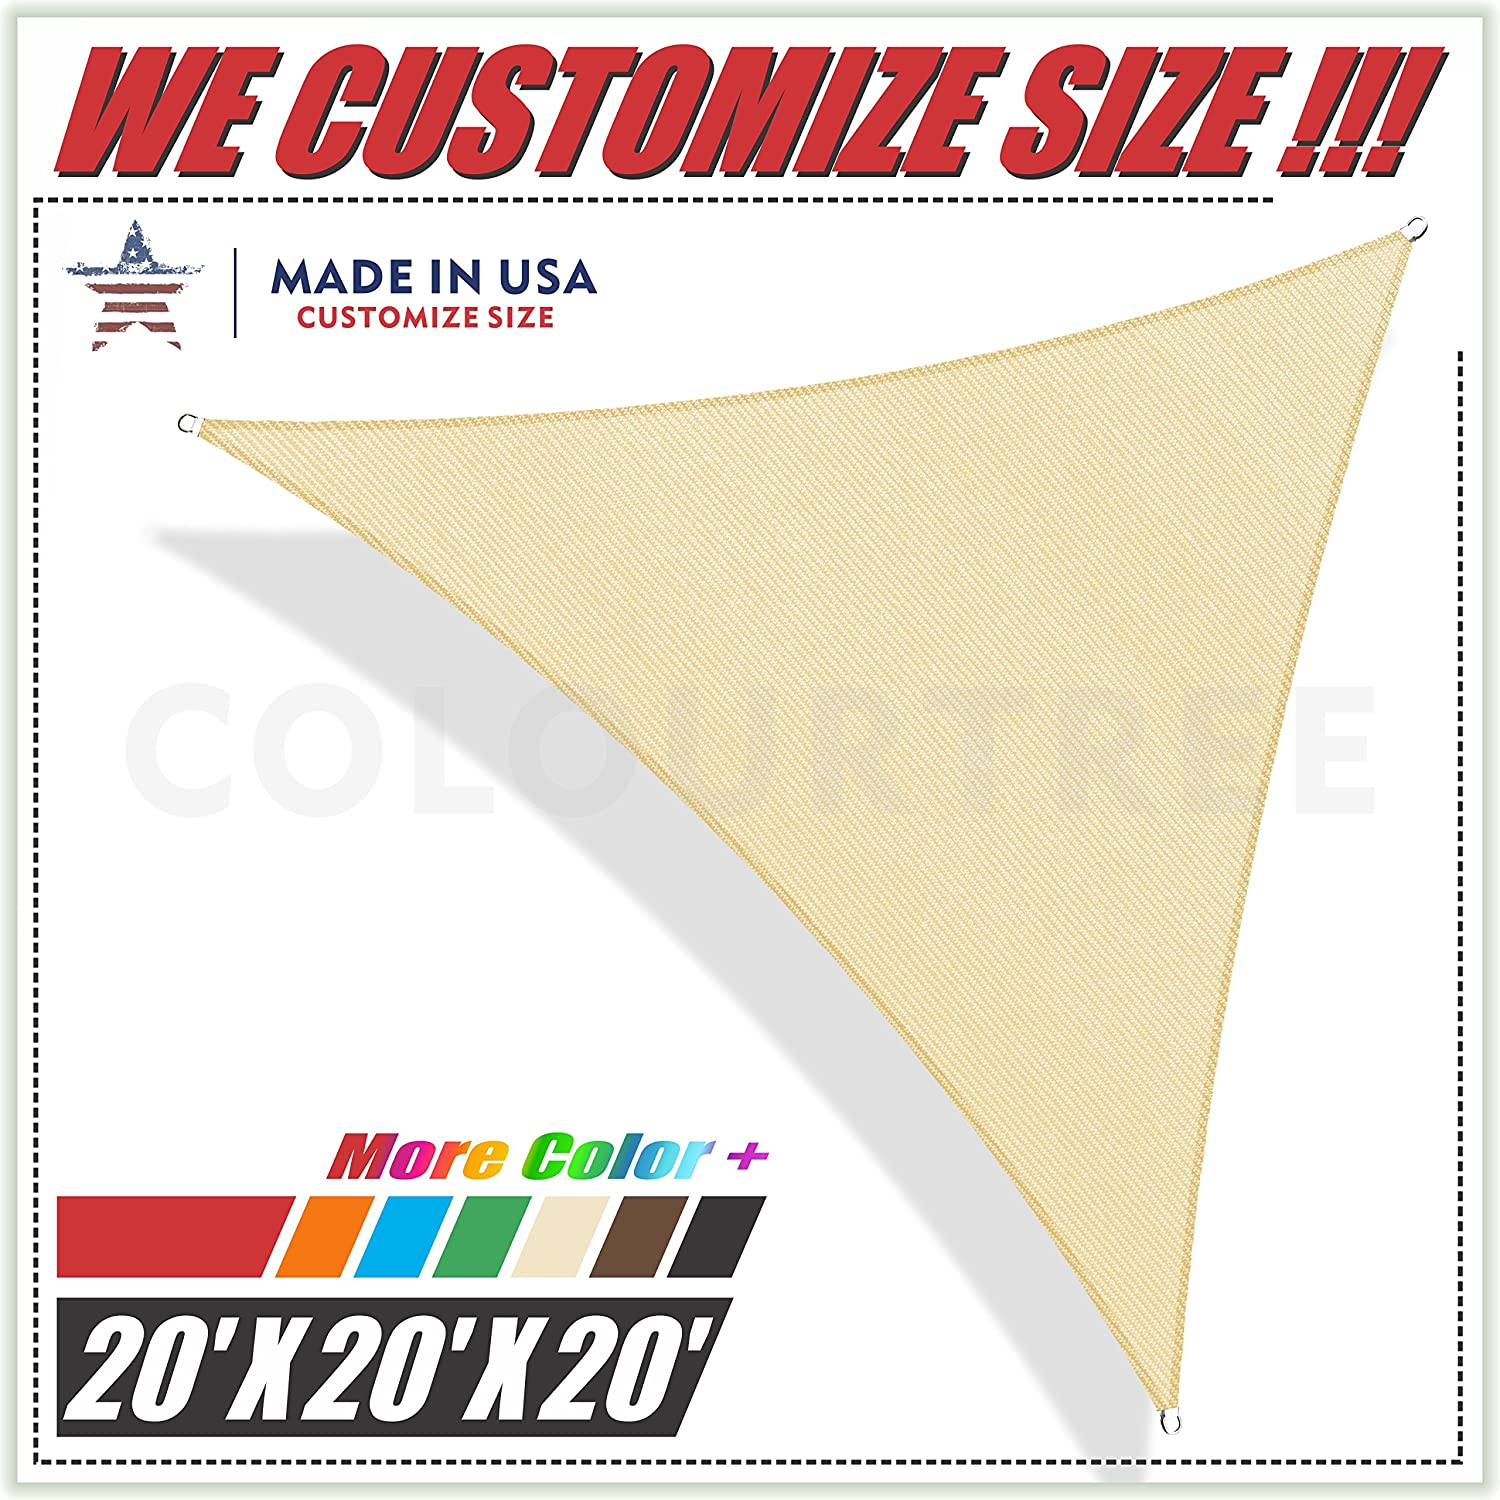 ColourTree 20 x 20 x 20 Beige Sun Shade Sail Triangle Canopy UV Resistant Heavy Duty Commercial Grade Outdoor Patio Carport Custom Size Available